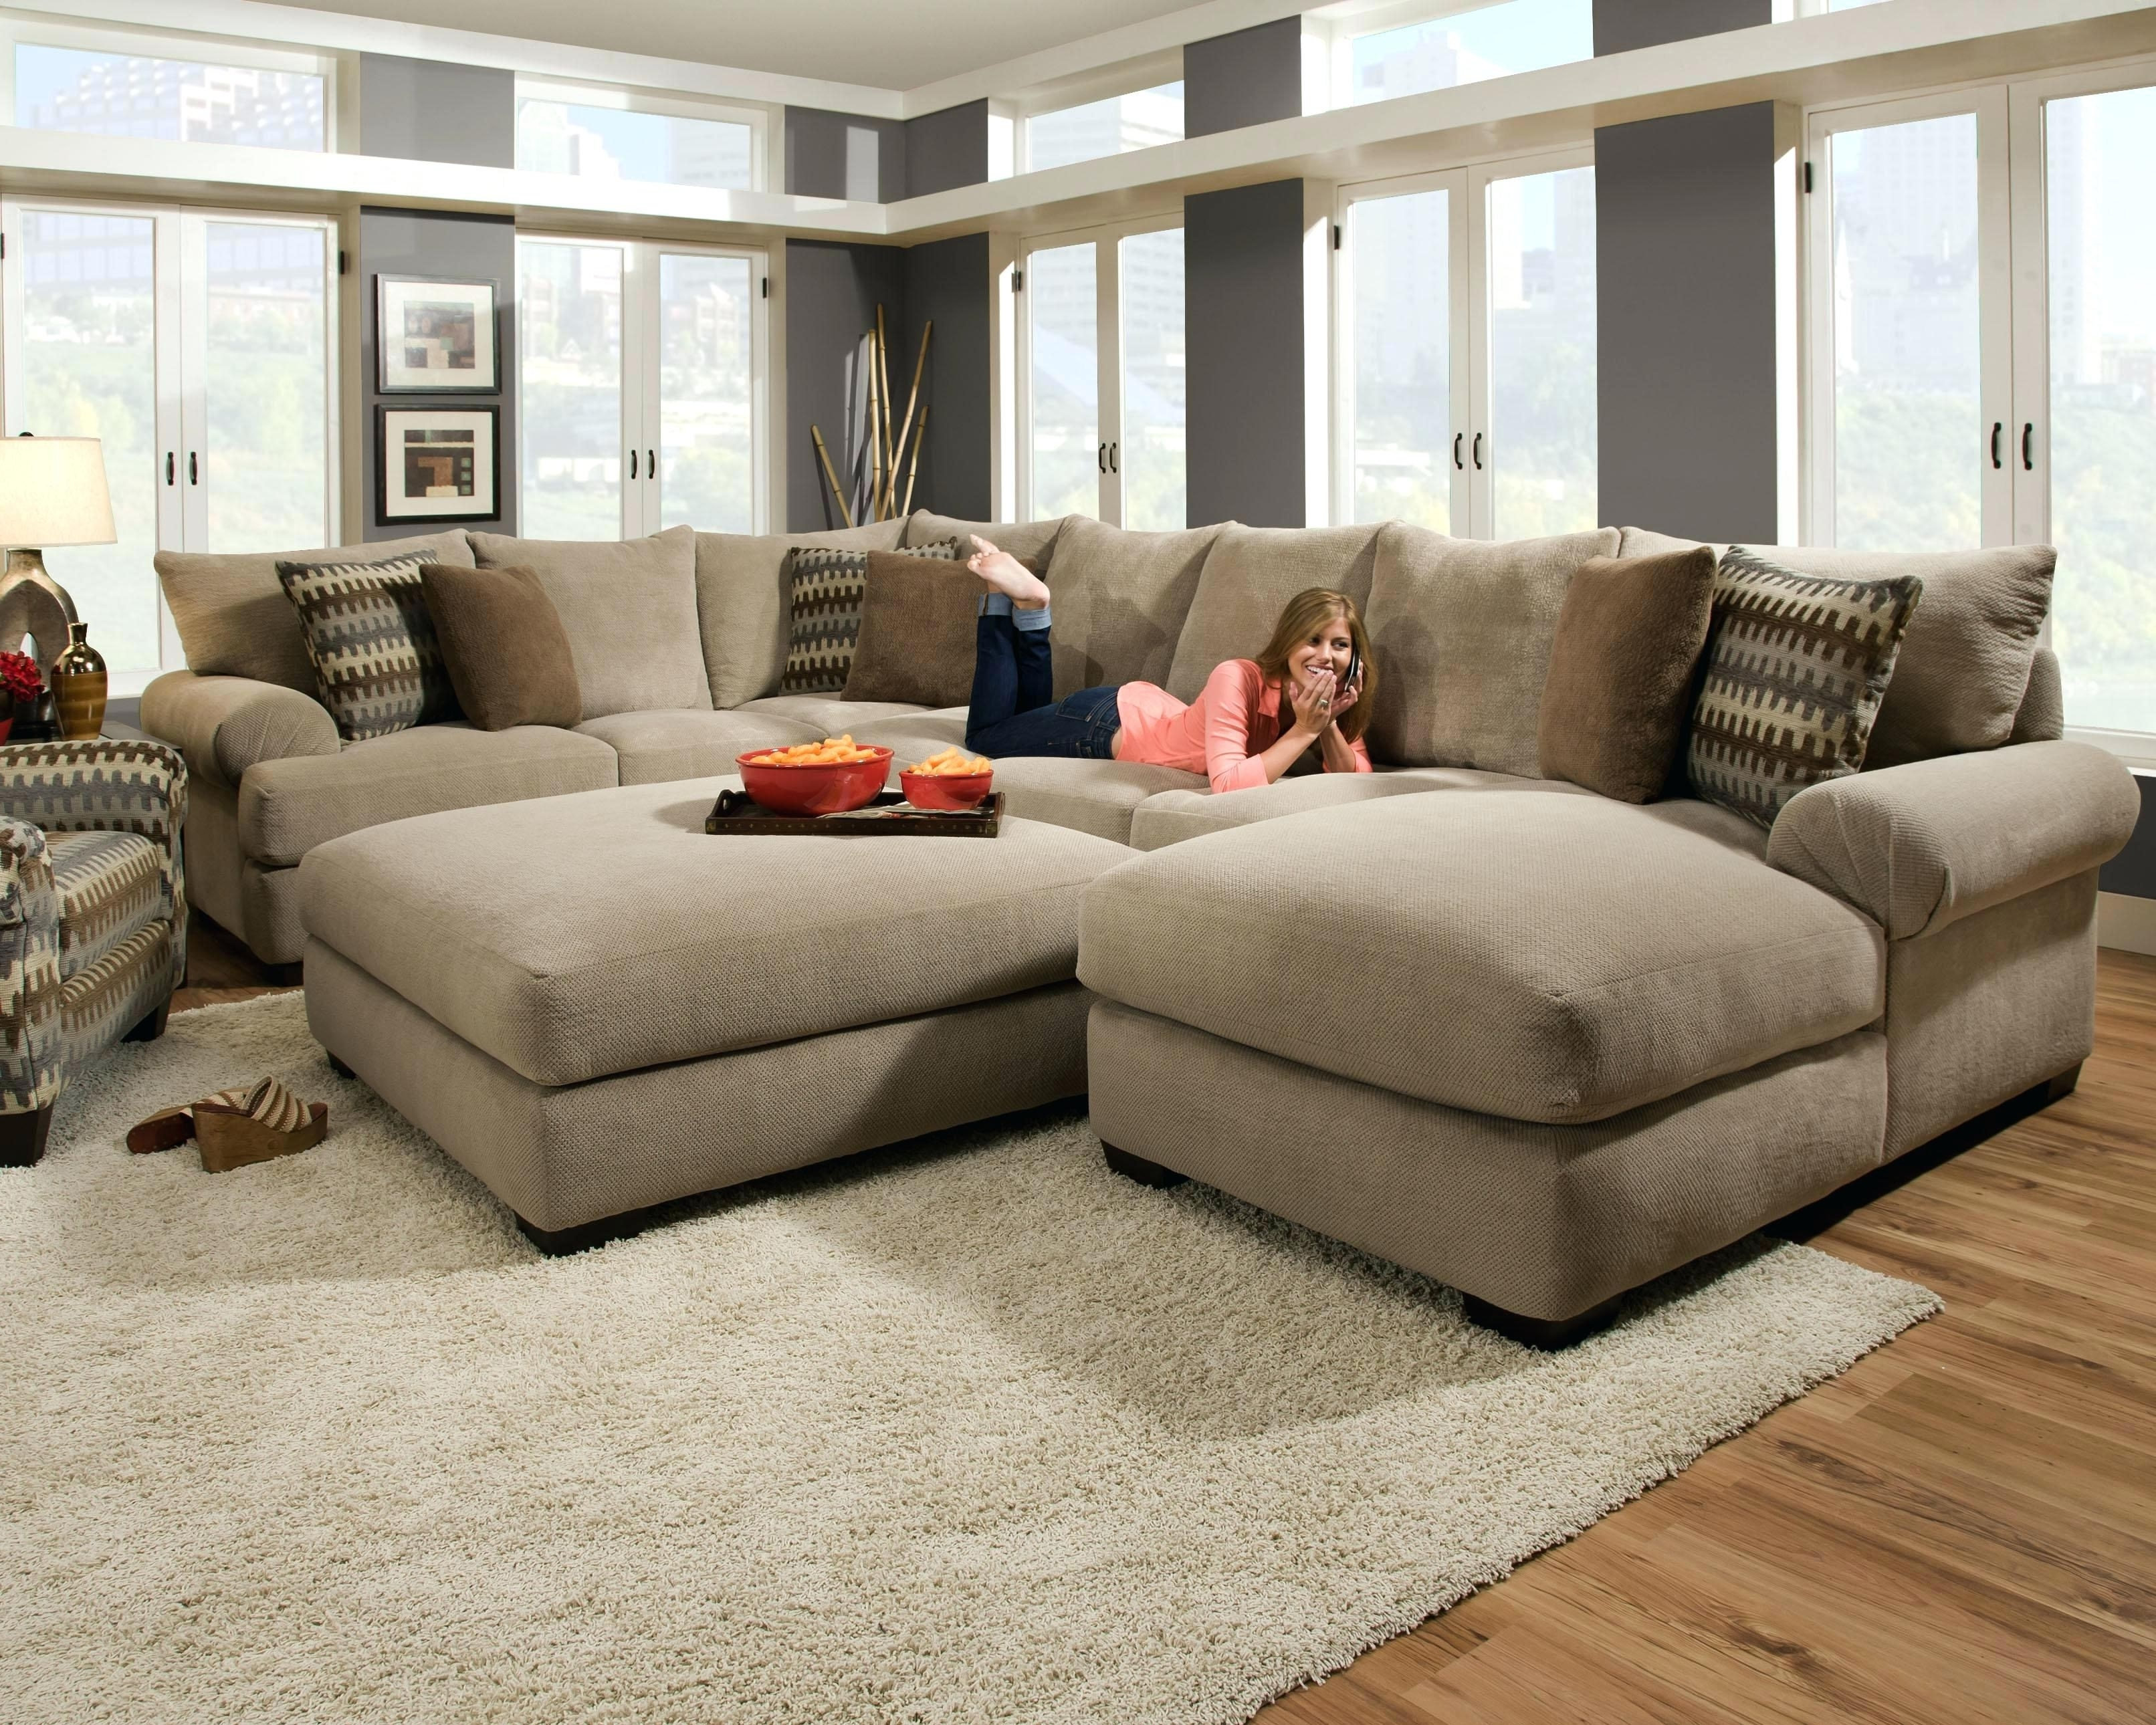 Most Popular Sectional Sofas Ottawa Regarding Kitchener Sectional Sofas (View 13 of 20)